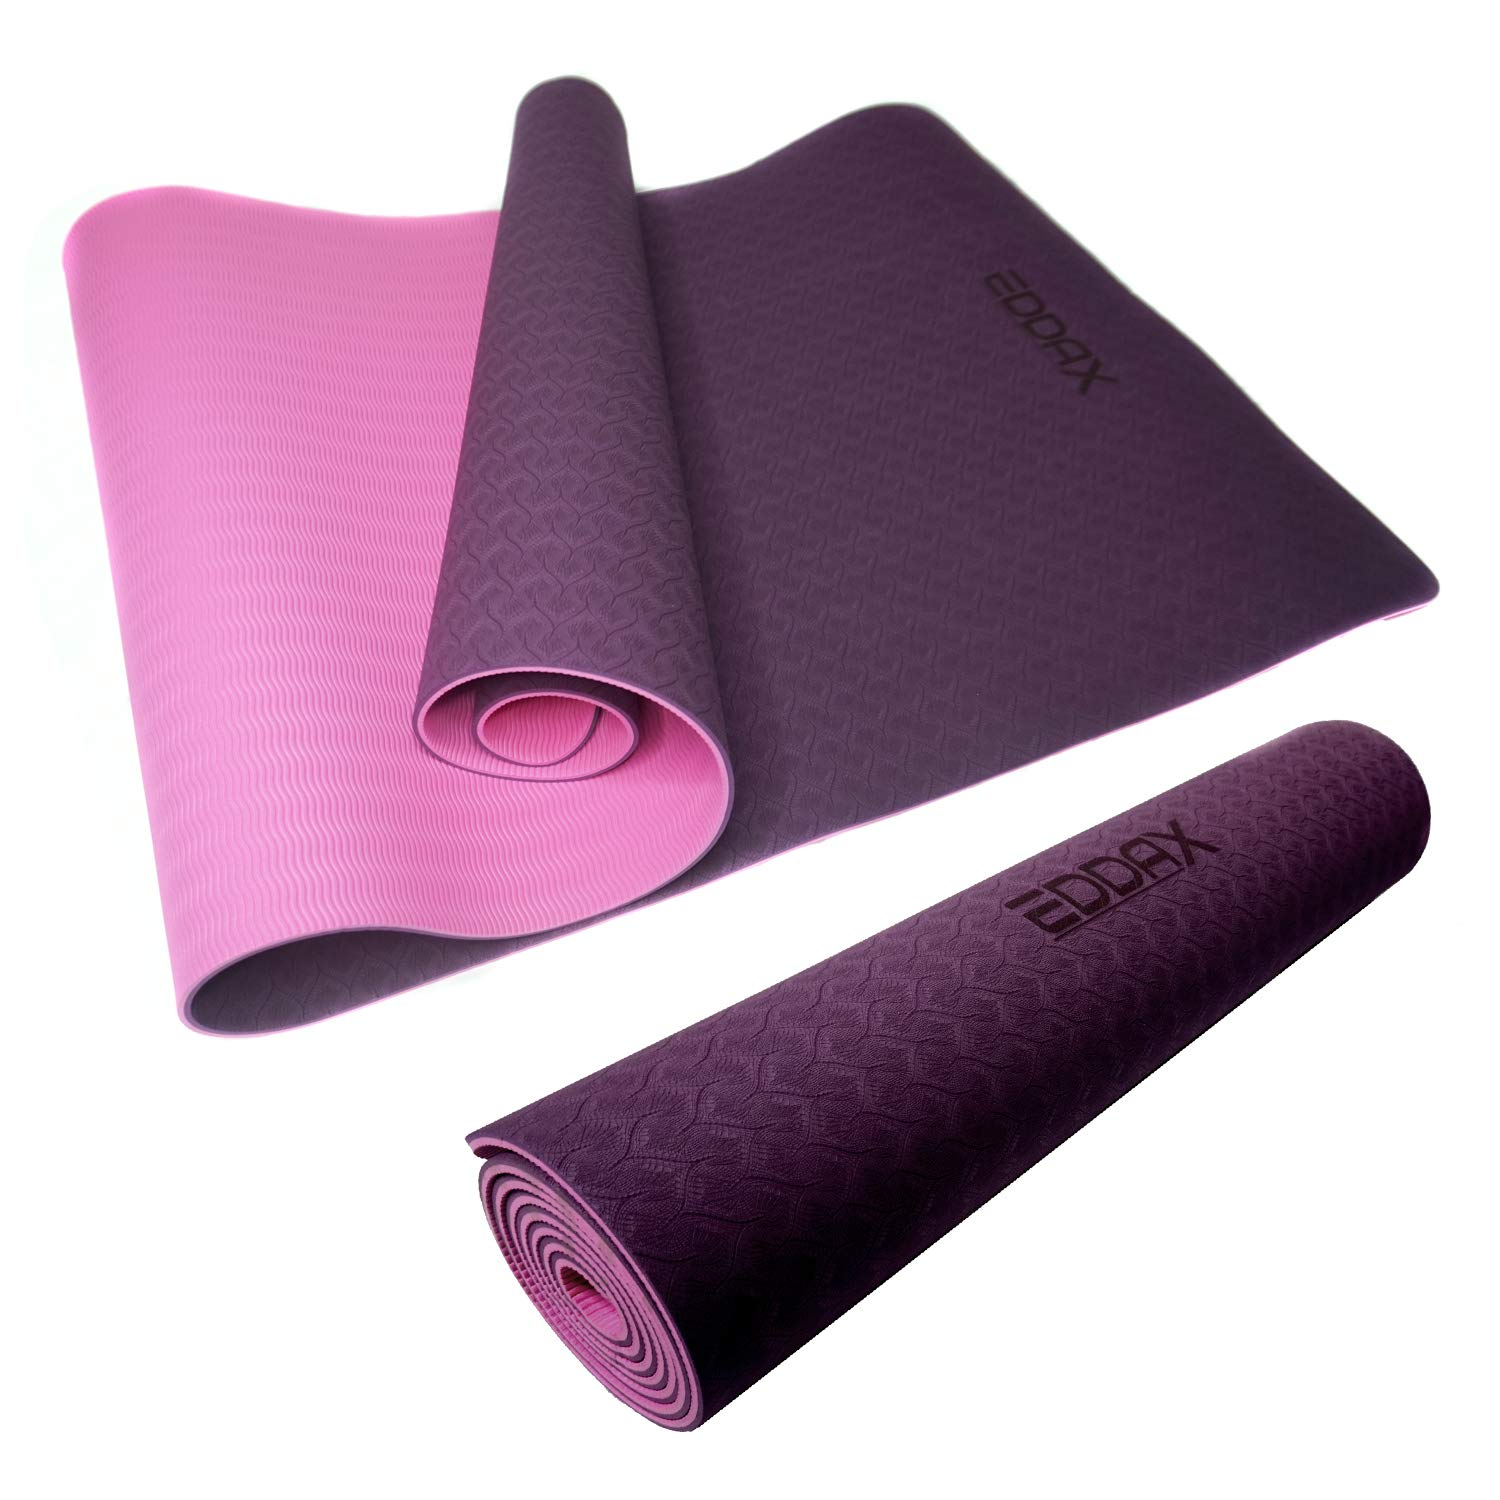 Eddax Eco Friendly Non Slip Yoga Mat, Exercise Anti-Tear Workout Mat for Pilates Yoga Fitness, Thickness 1/4 Durable Mat 72